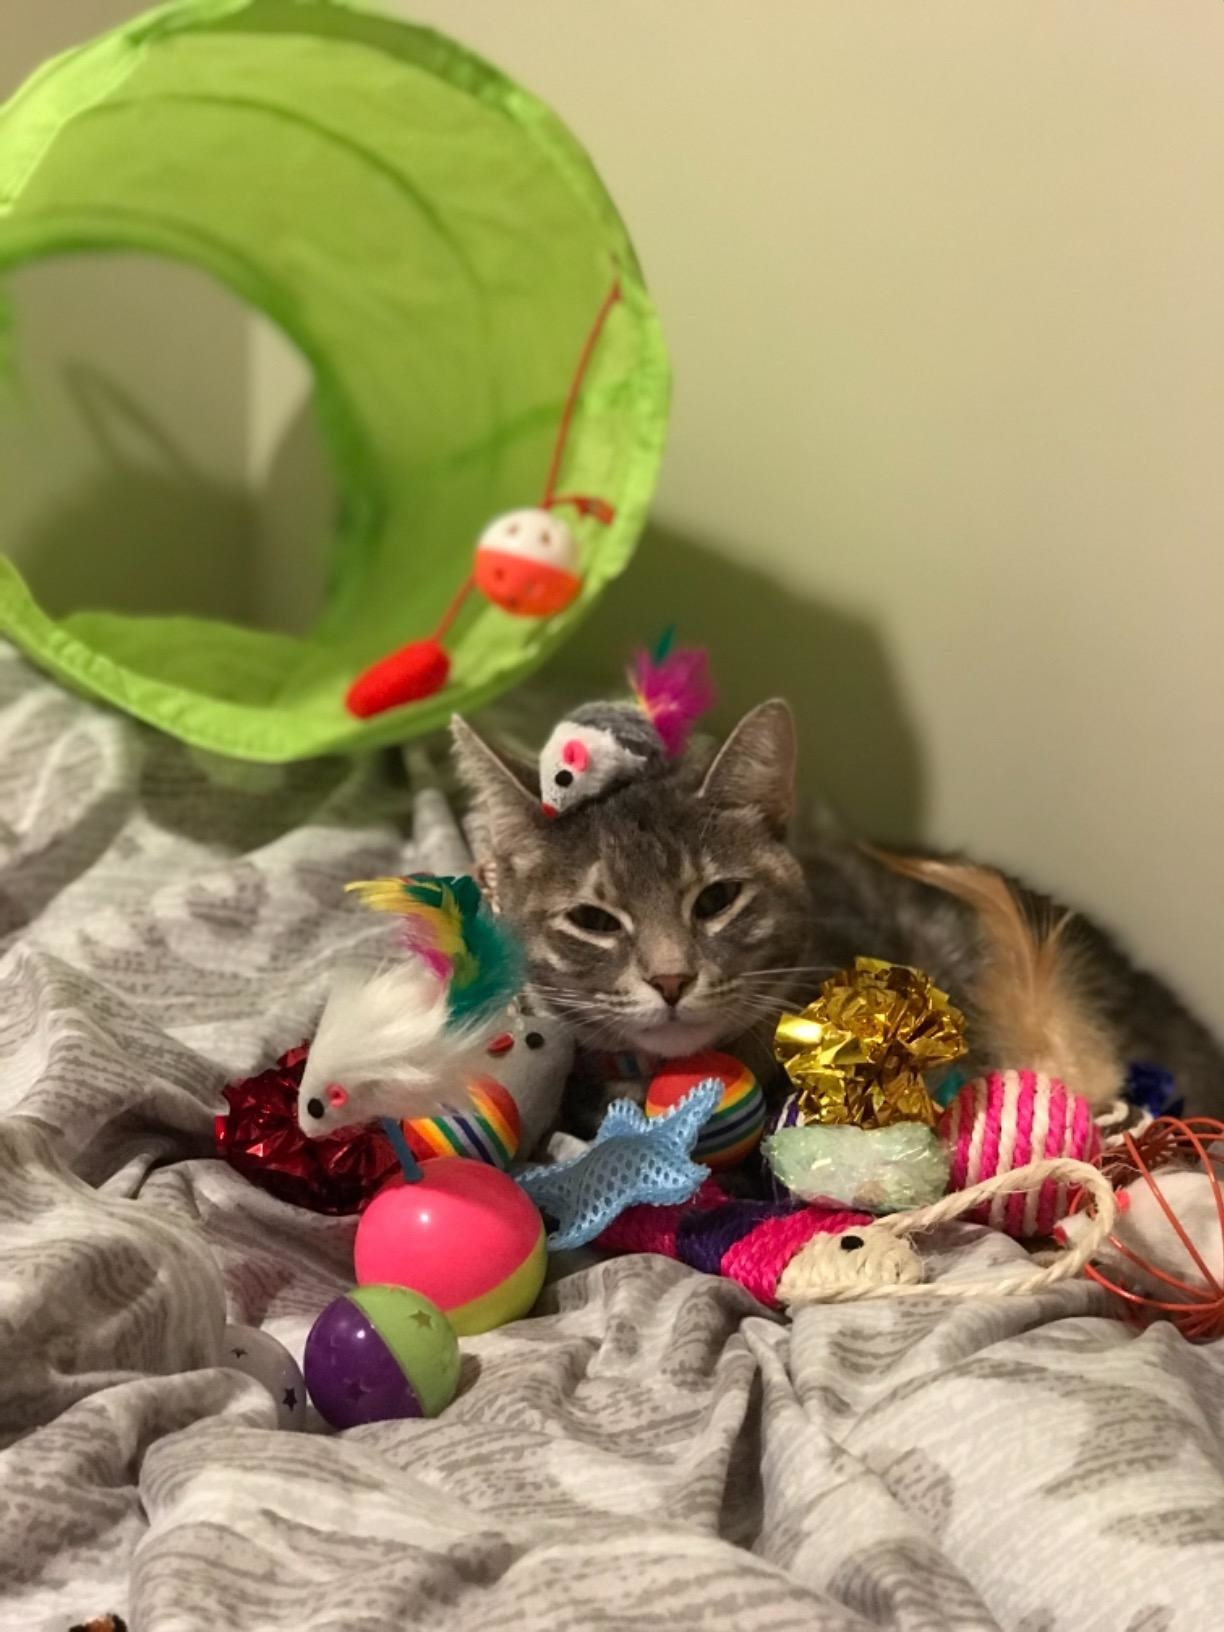 Reviewer's cat in bed with toys